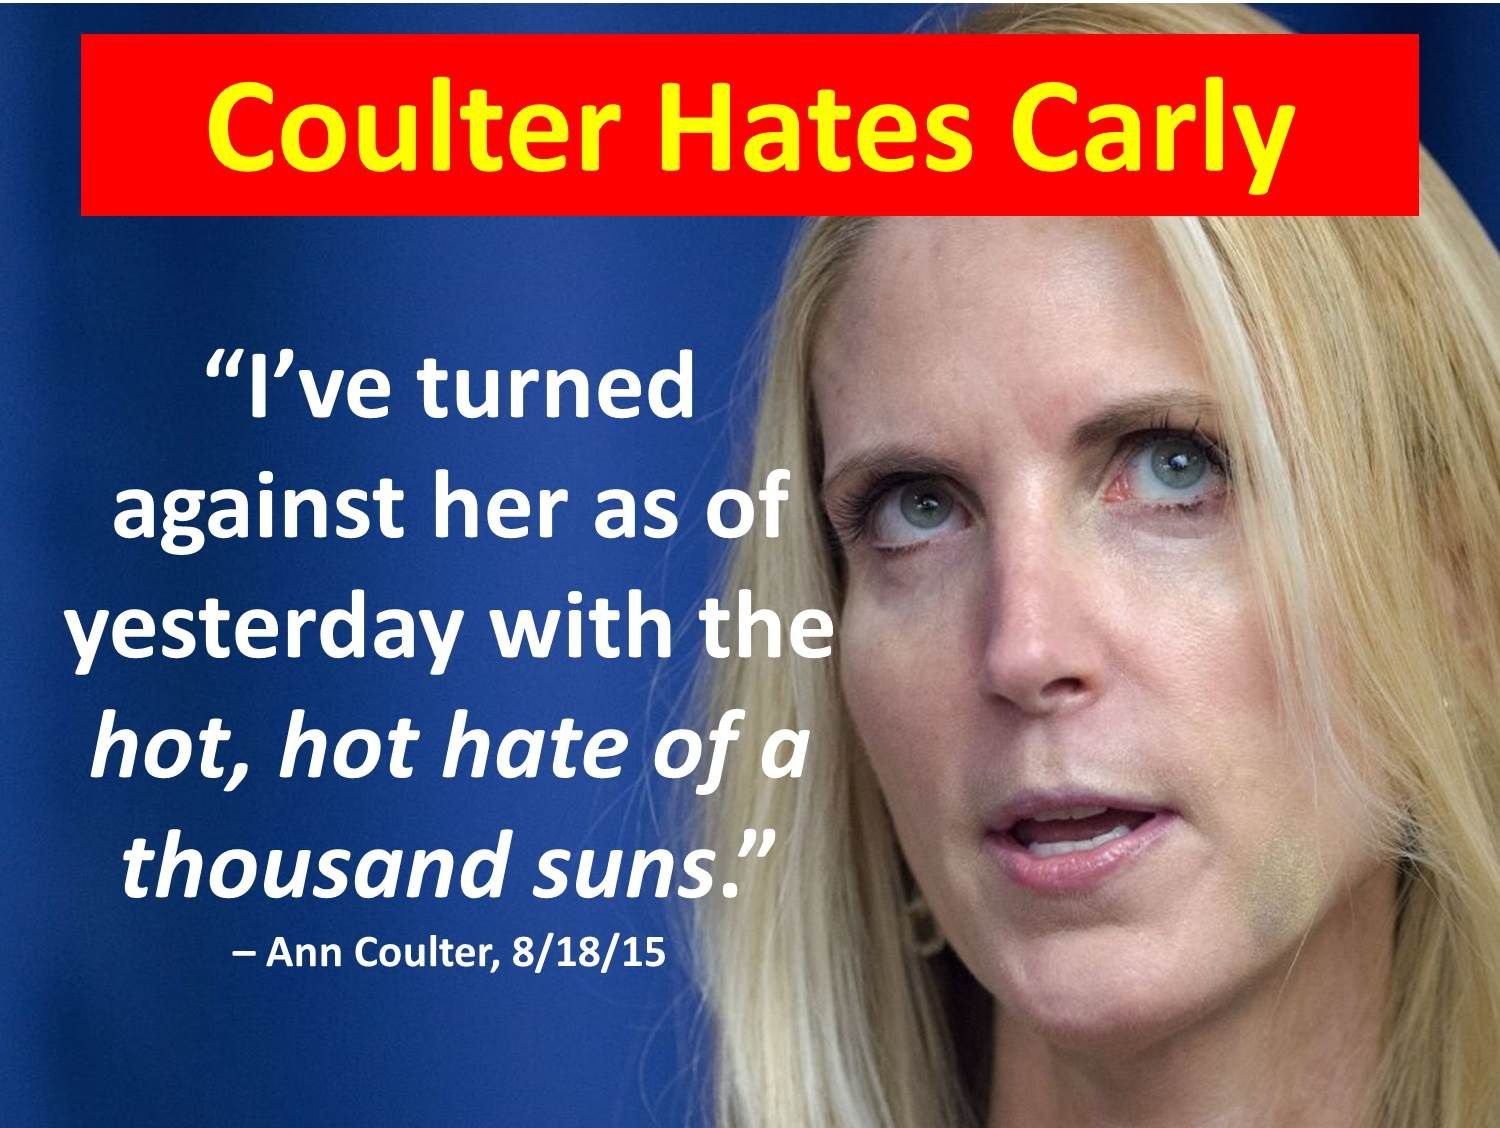 essay ldquo ann coulter hates carly fiorina rdquo at wp me pjhfp z essay ldquoann coulter hates carly fiorinardquo at wp